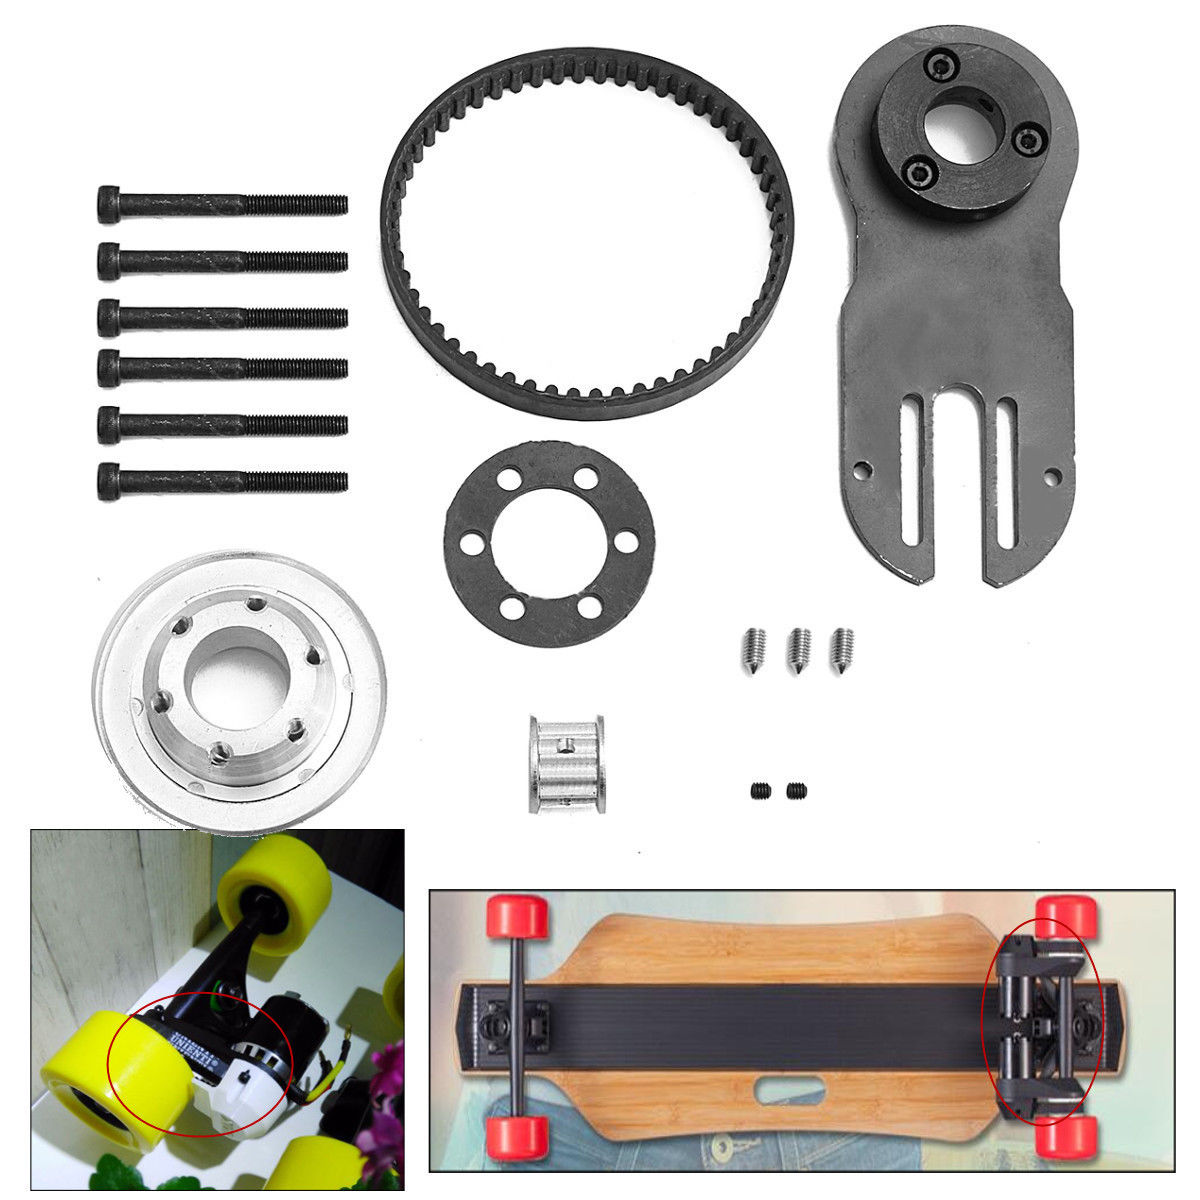 Mayitr Electric Skateboard Parts Pulleys Motor Mount Kit Tool for 83 90 97mm Wheels Skate font